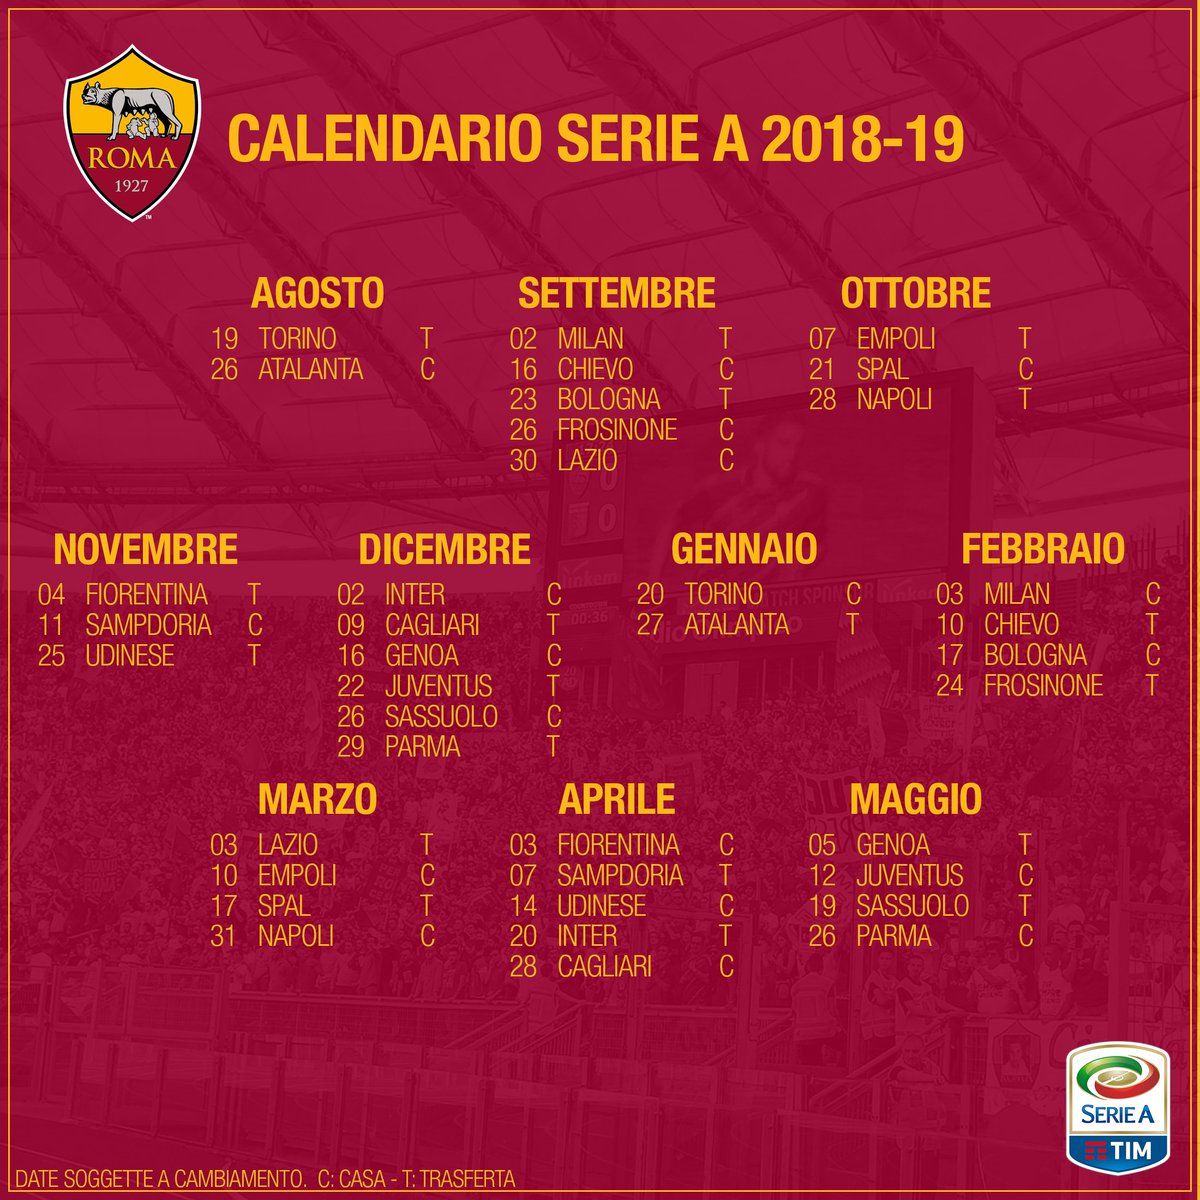 Asroma Calendario.As Roma On Twitter Ecco Il Calendario Completo Della